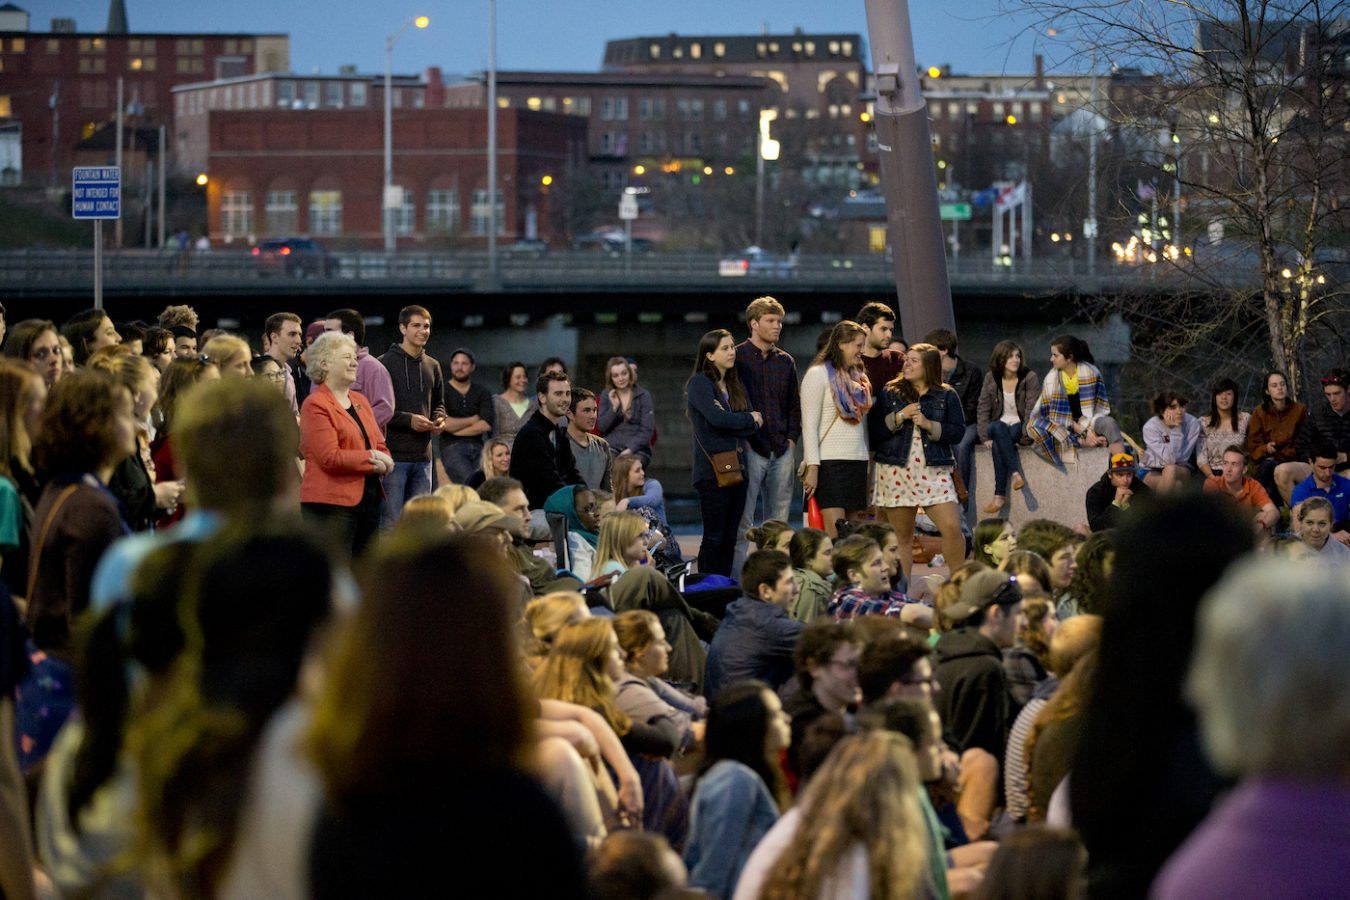 A crowd enjoys Bates student performances in Auburn's Festival Plaza.